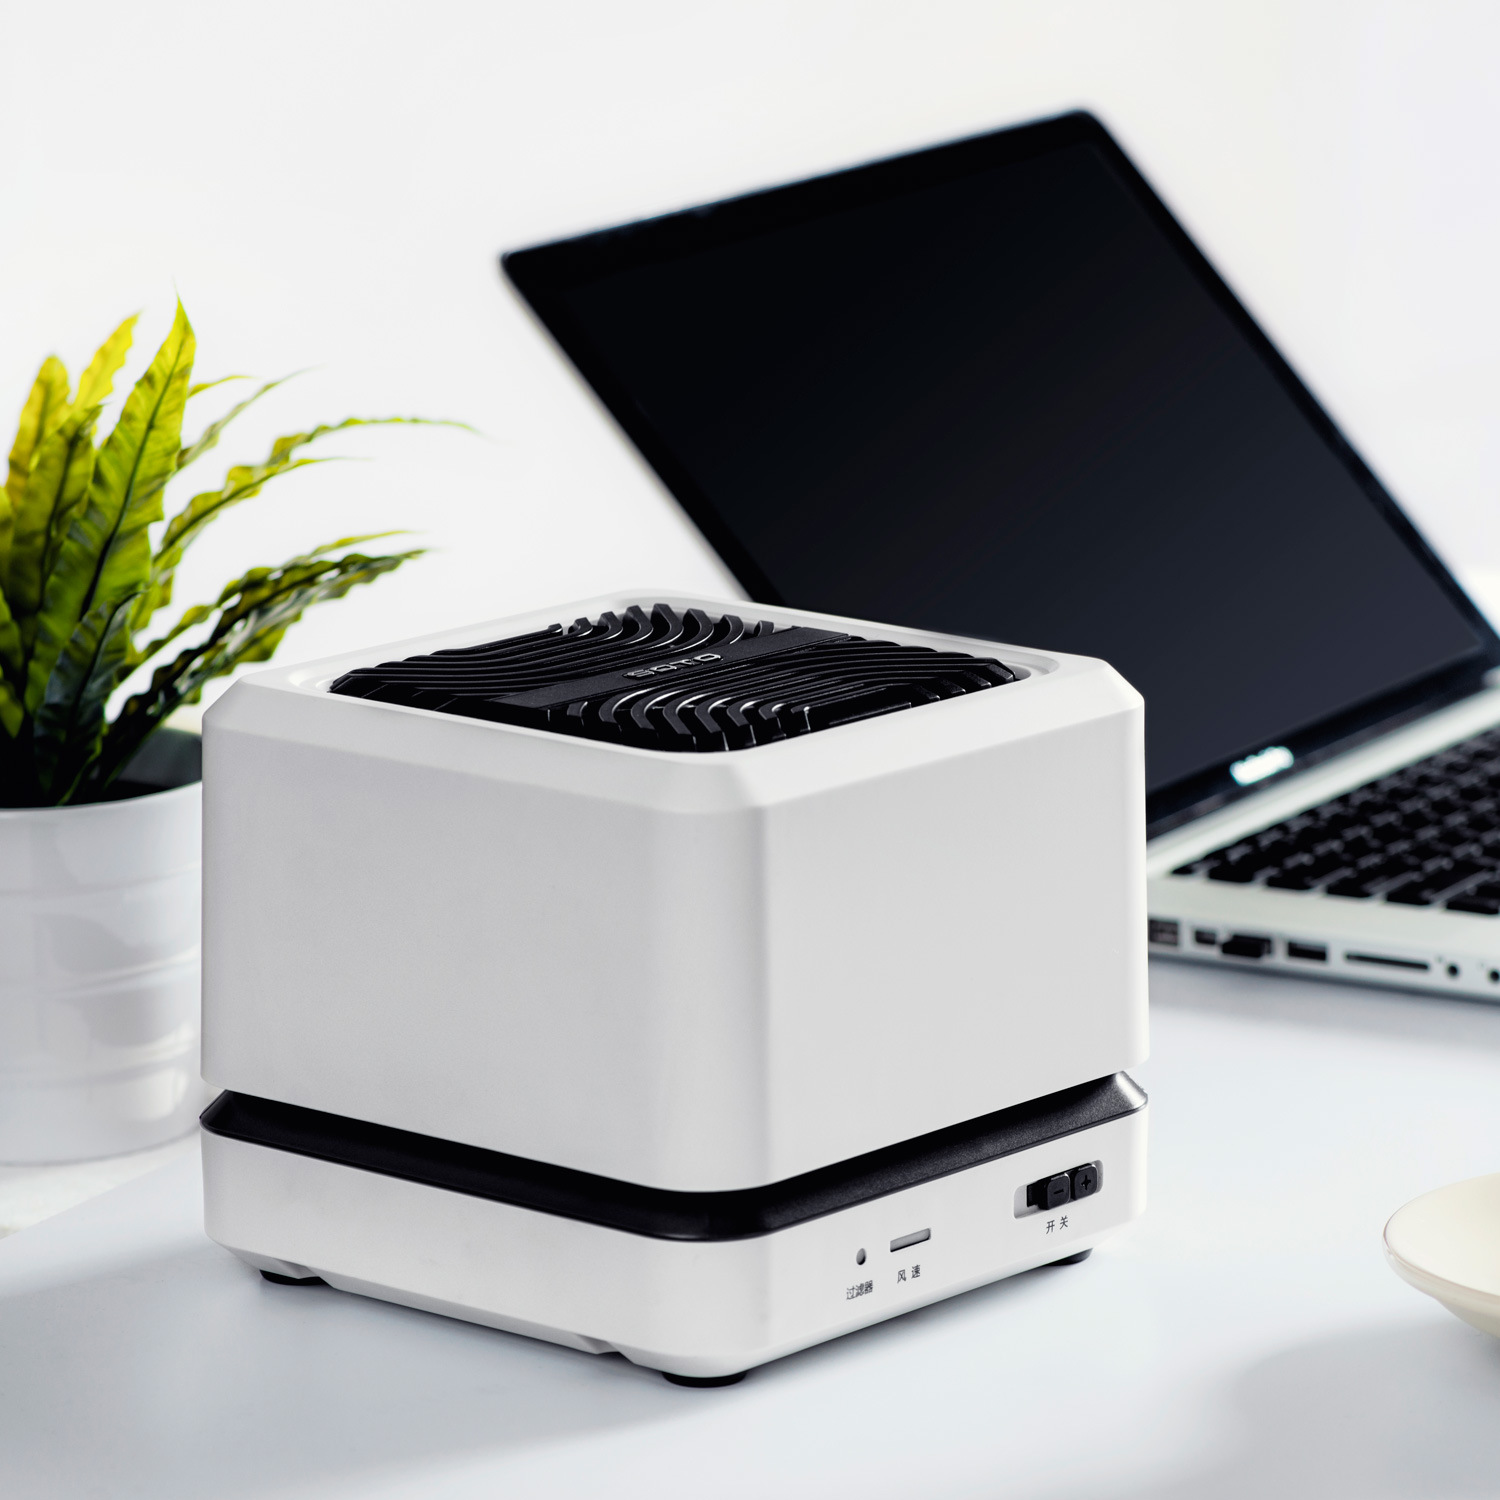 Soto-Jx101b Tabletop Air Purifier, Mini Desktop Air Purifier